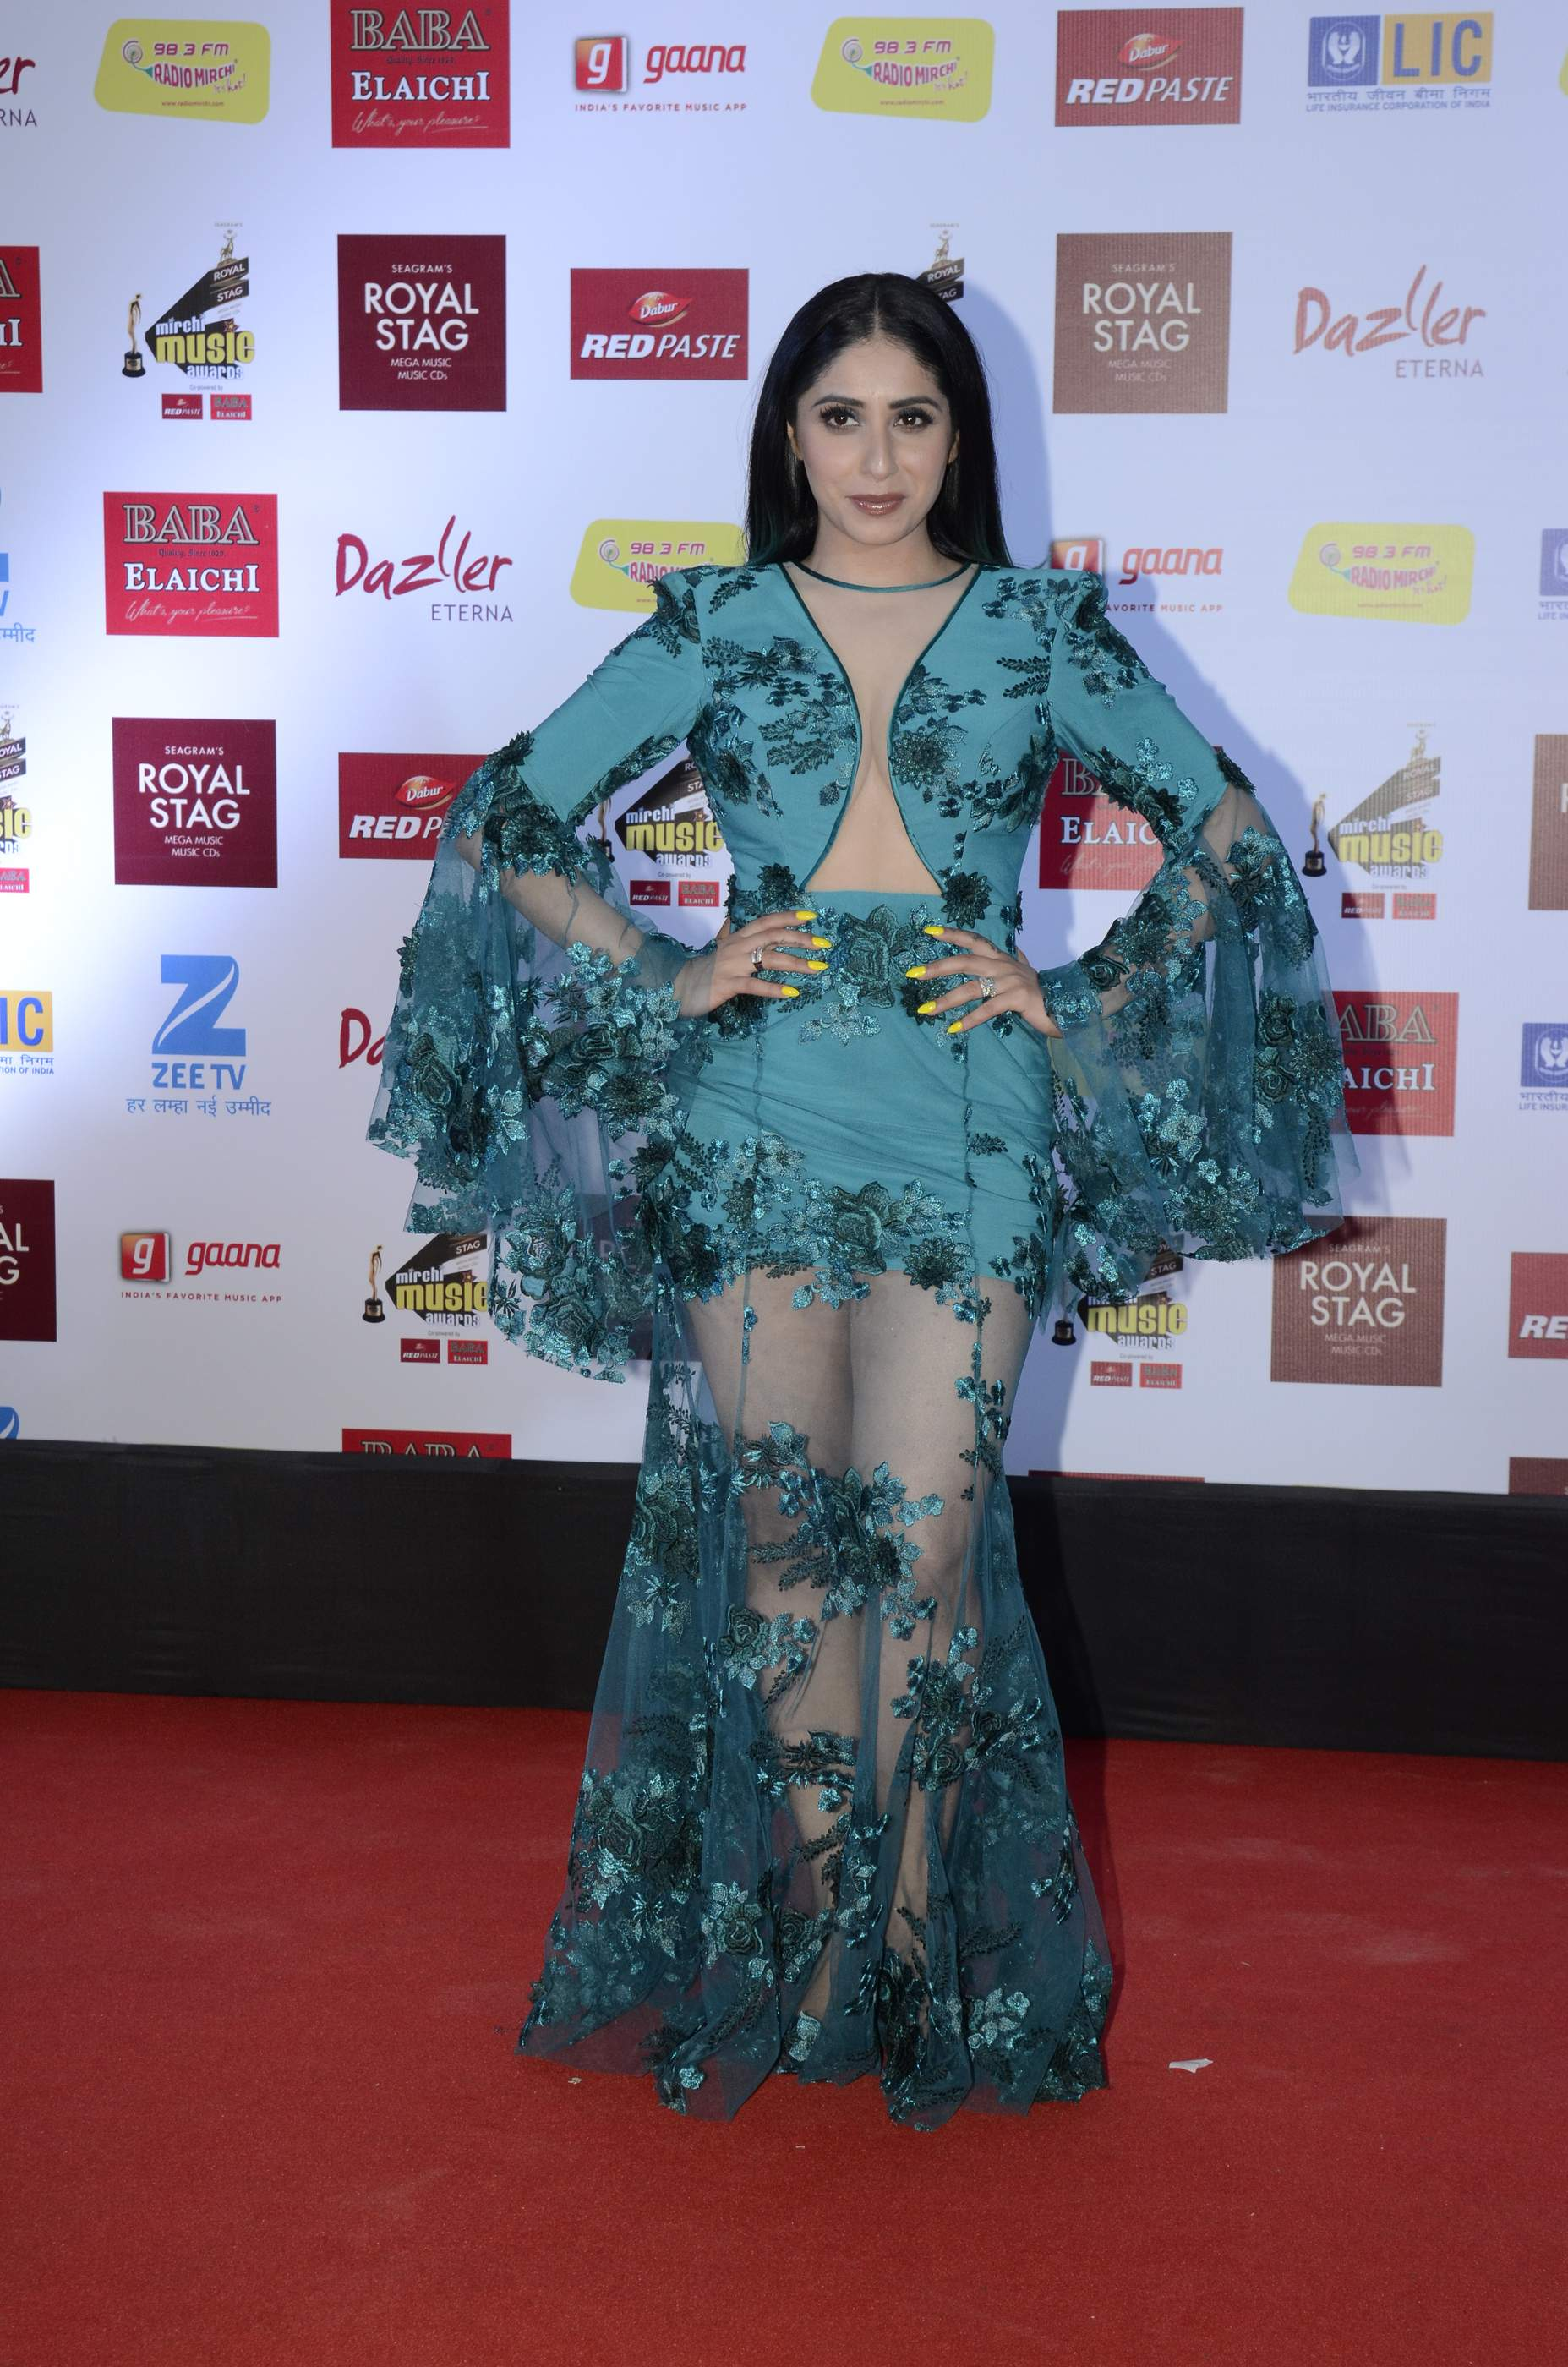 mirchi music HOT Celebs Dazzle At Mirchi Music Awards Event | Models | Actresses Radio Mirchi Awards Red Carpet 6